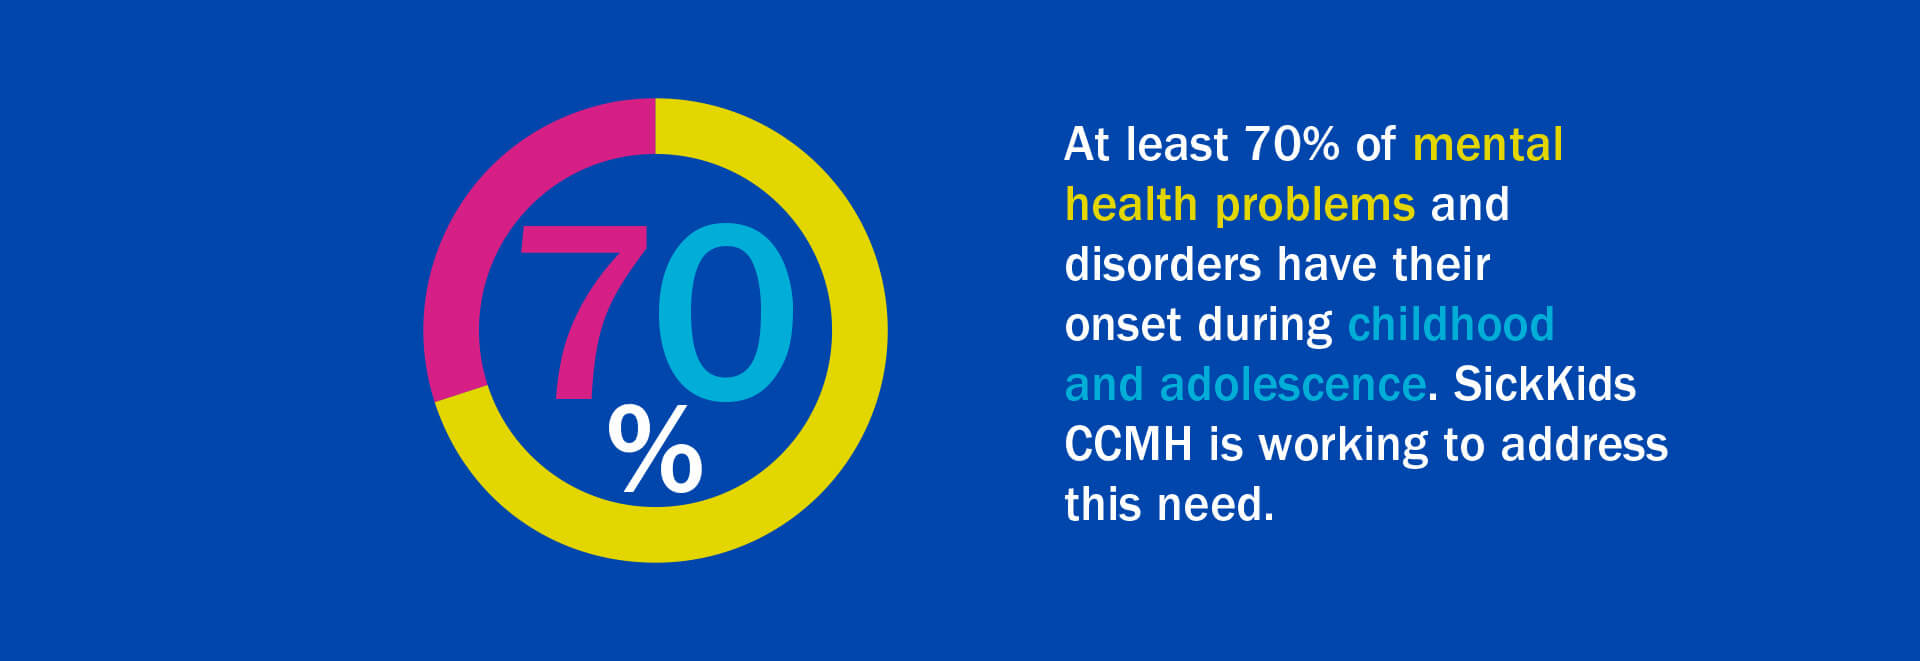 Graphic blue background with coloured circle and 70% inside and statement: At least 70% of mental health problems and disorders have their onset during childhood and adolescence. SickKids CCMH is working to address this need.